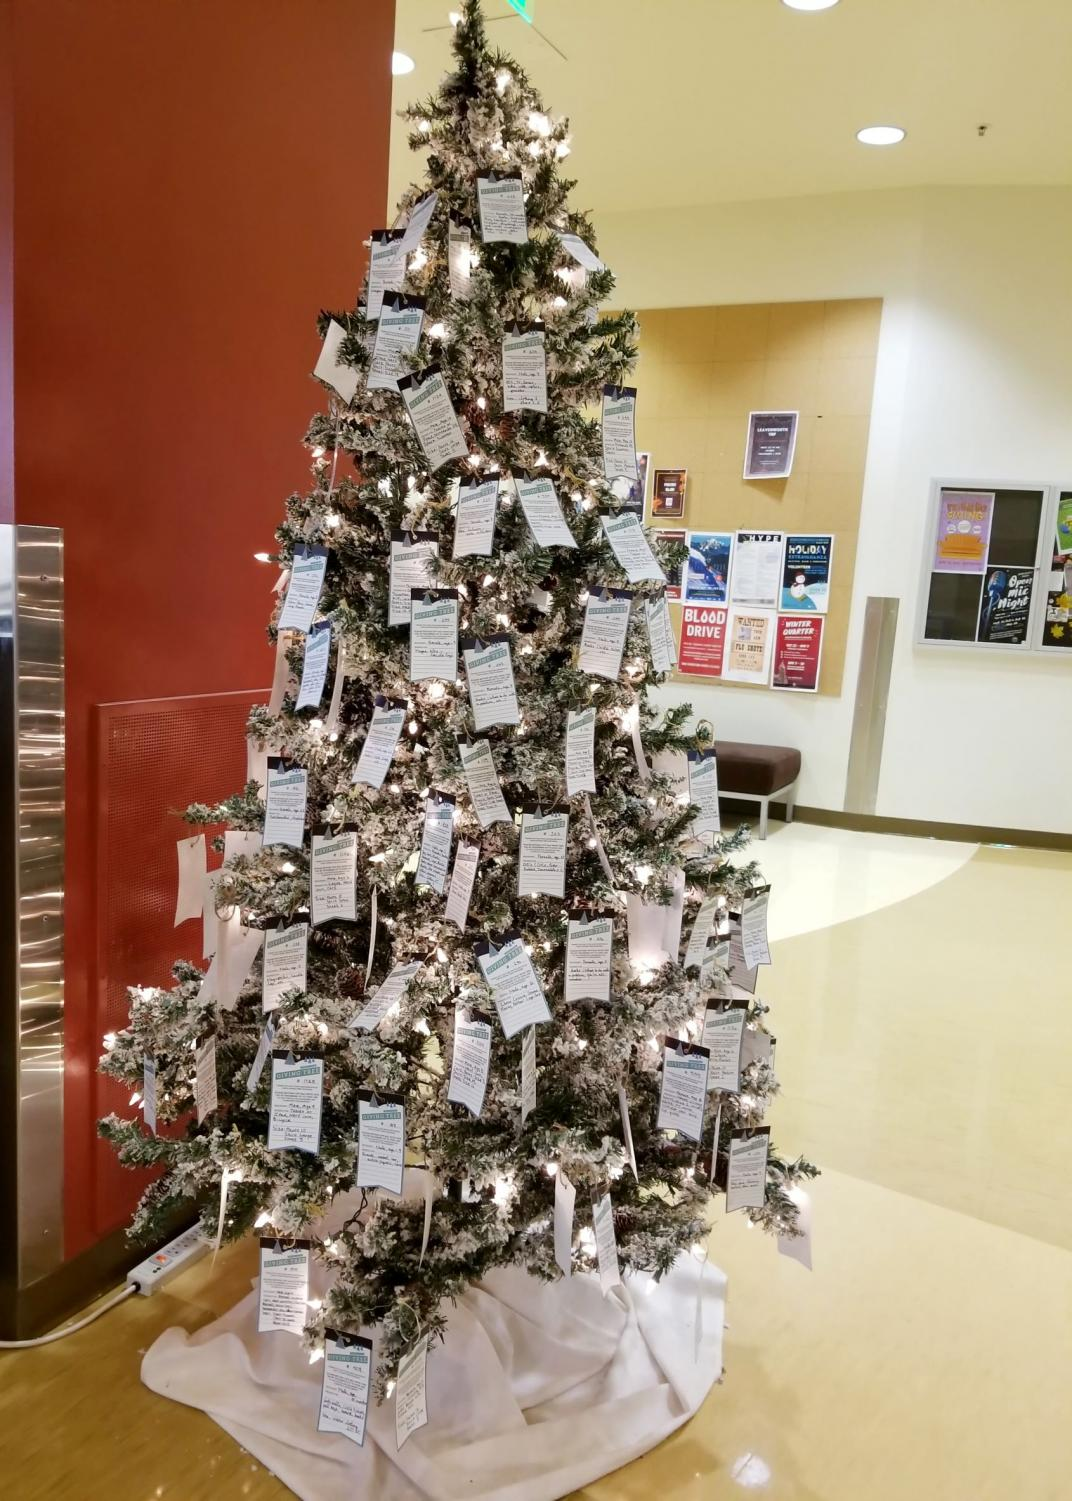 The Giving Tree is laden with cards detailing gift requests for boys and girls.